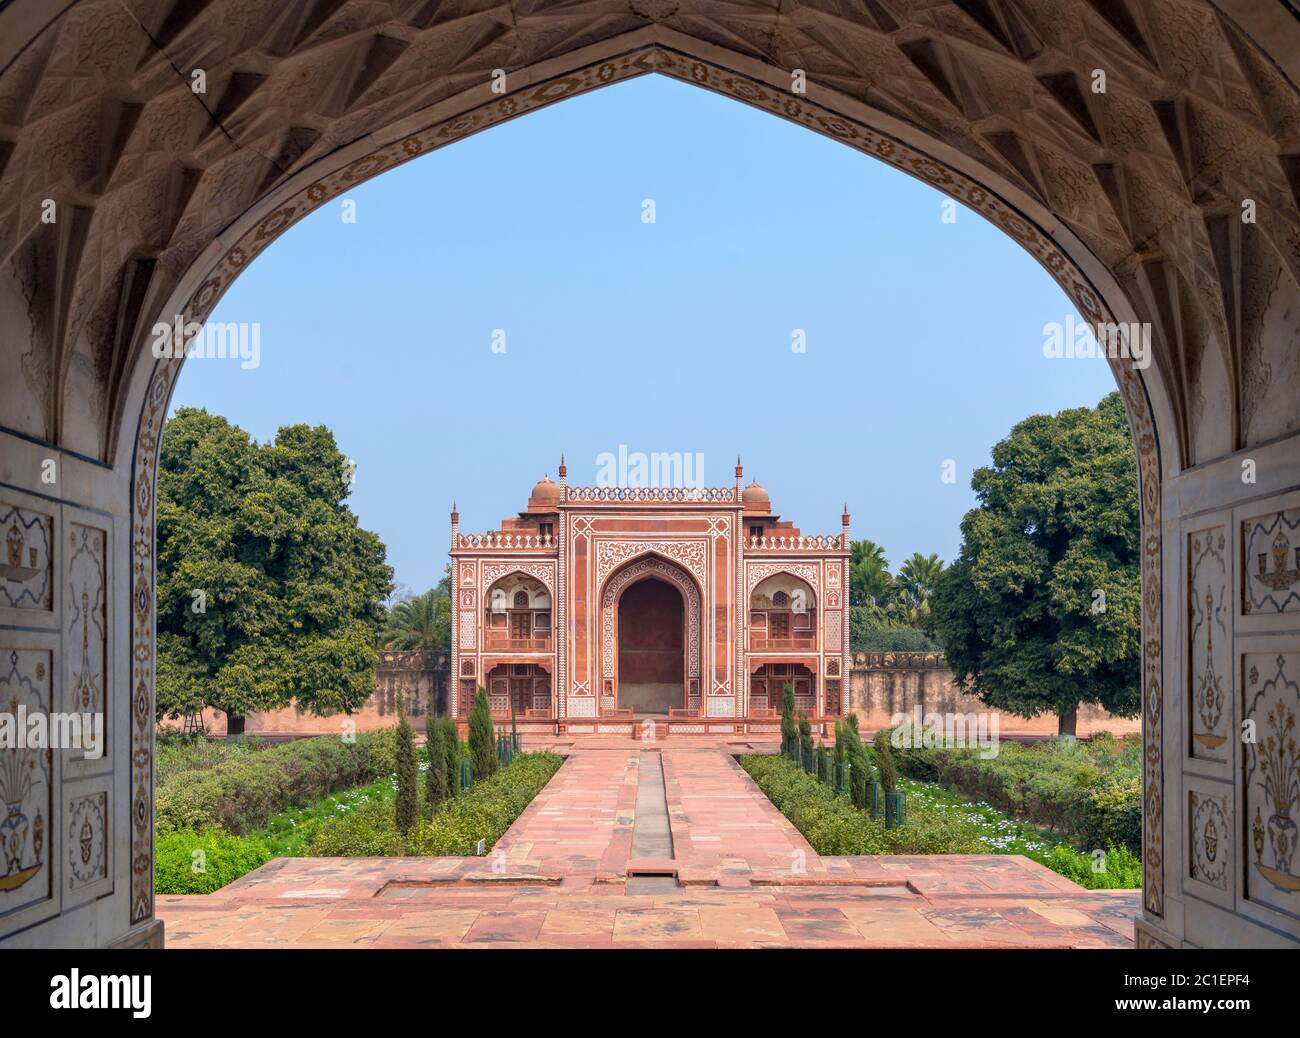 """View from the Tomb of Itmad-ud-Daulah (I'timād-ud-Daulah), also known as """"Baby Taj"""", a Mughal mausoleum in the city of Agra, Uttar Pradesh, India Stock Photo"""